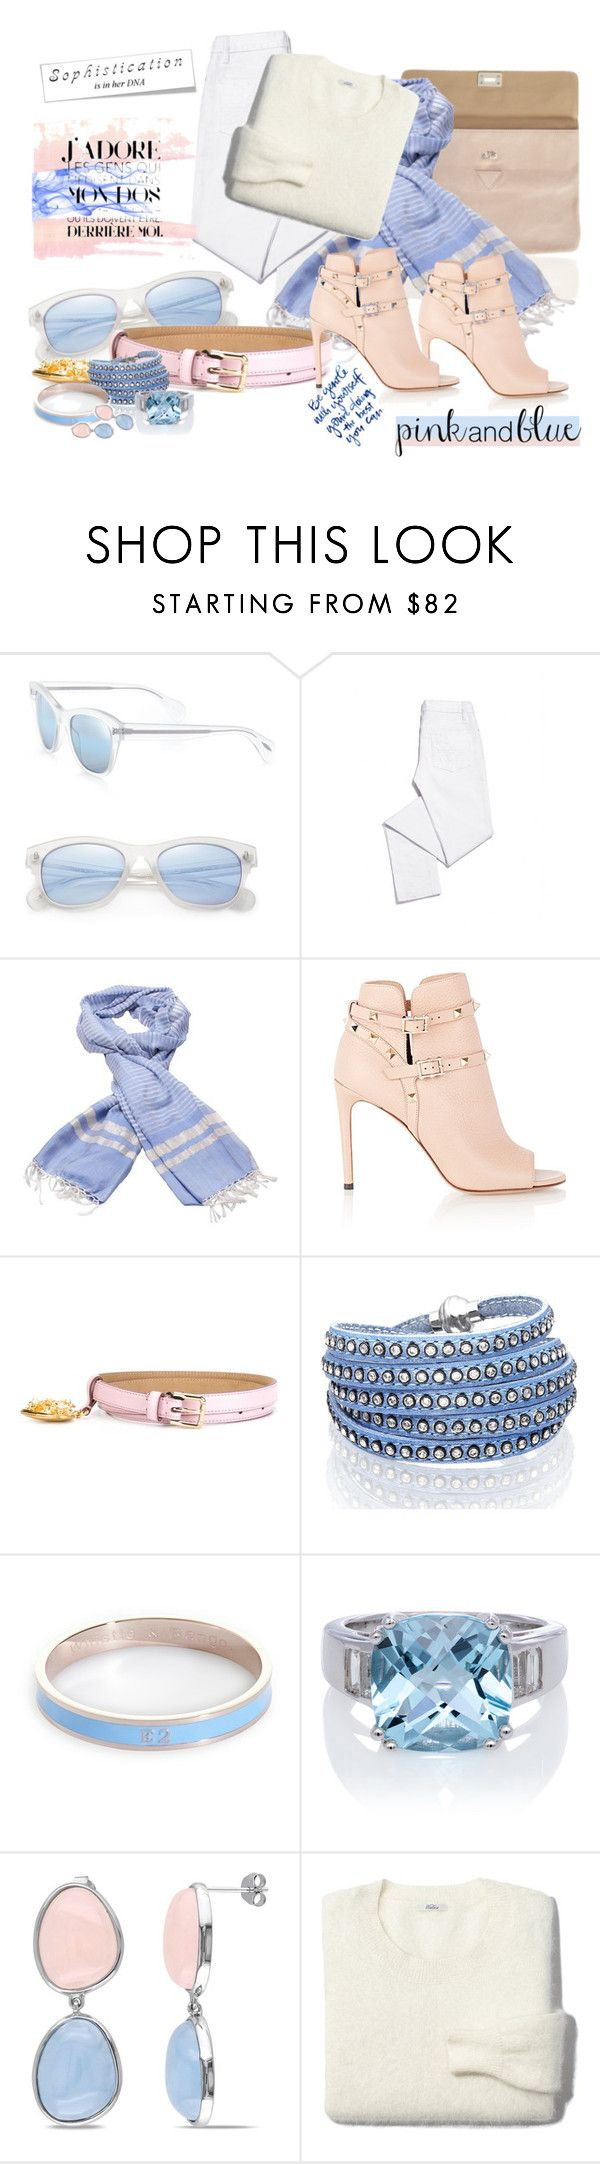 """""""2016 Pantone"""" by mrs-rc ❤ liked on Polyvore featuring Oliver Peoples, Tory Burch, Valentino, Dolce&Gabbana, Sif Jakobs Jewellery, Whistle & Bango, Ice, Madewell, women's clothing and women's fashion"""